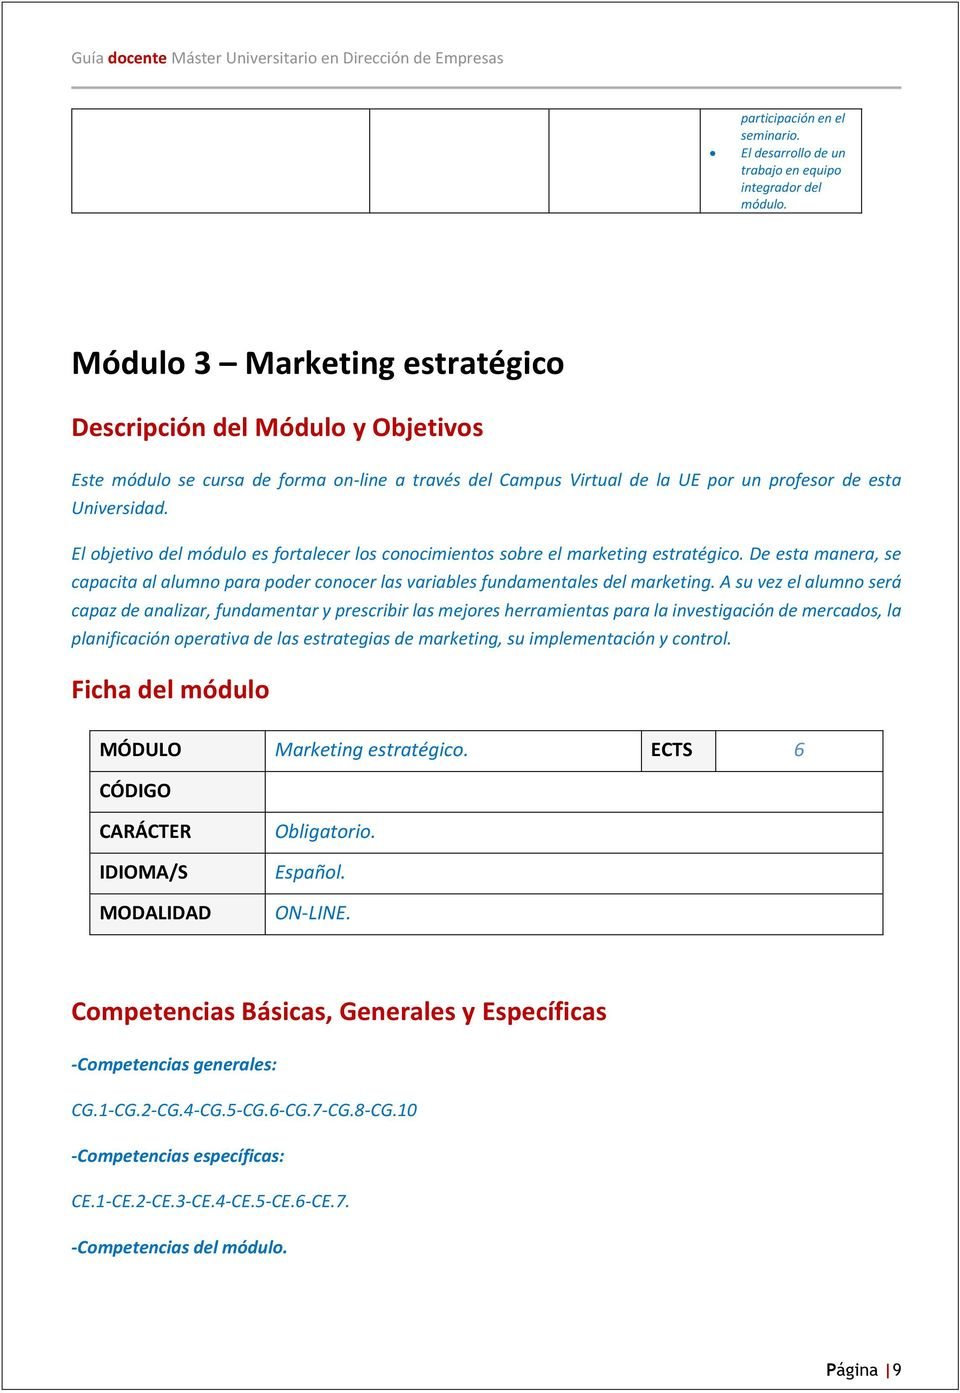 El objetivo del módulo es fortalecer los conocimientos sobre el marketing estratégico. De esta manera, se capacita al alumno para poder conocer las variables fundamentales del marketing.